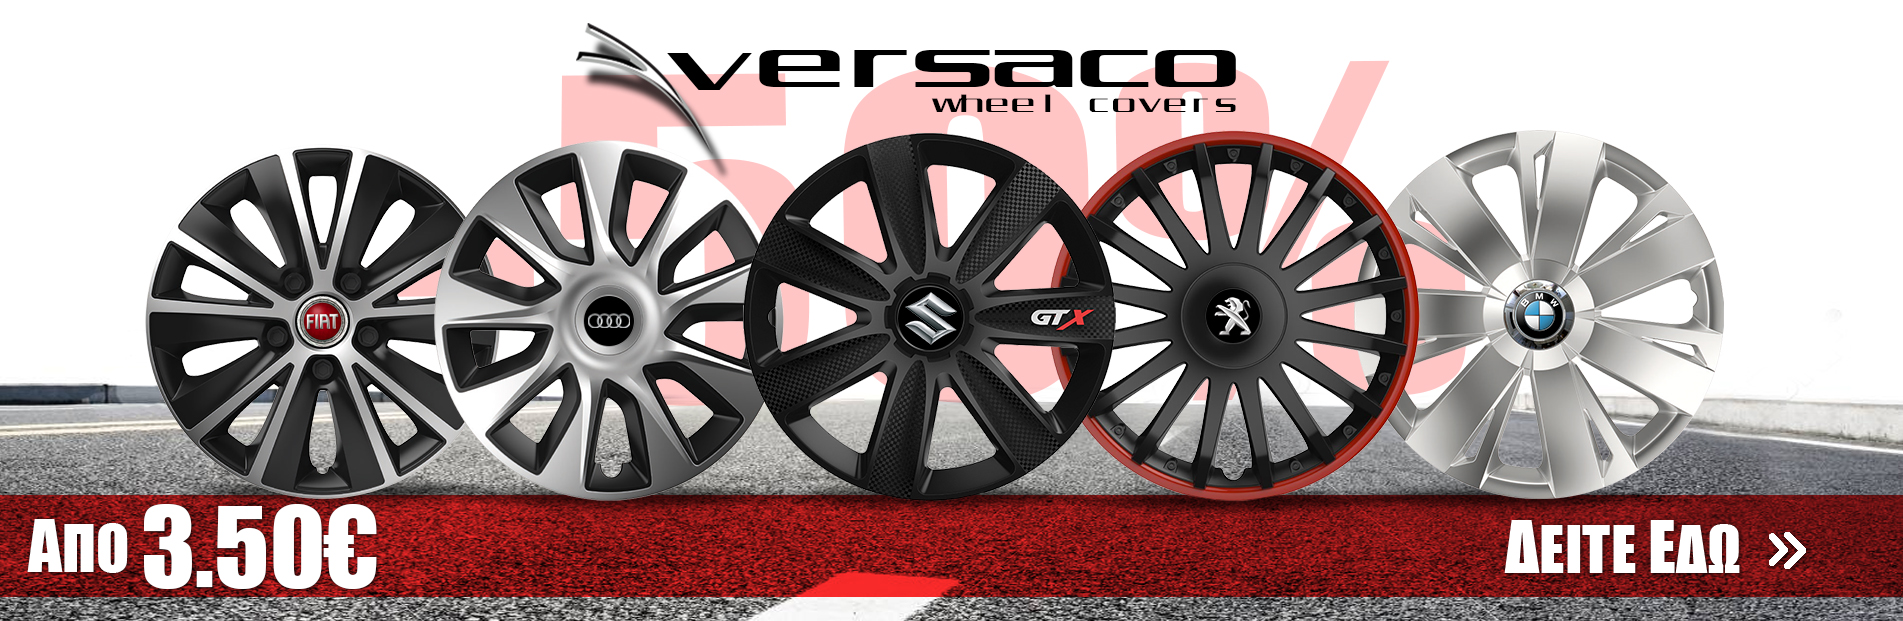 Versaco Banner For Site Final